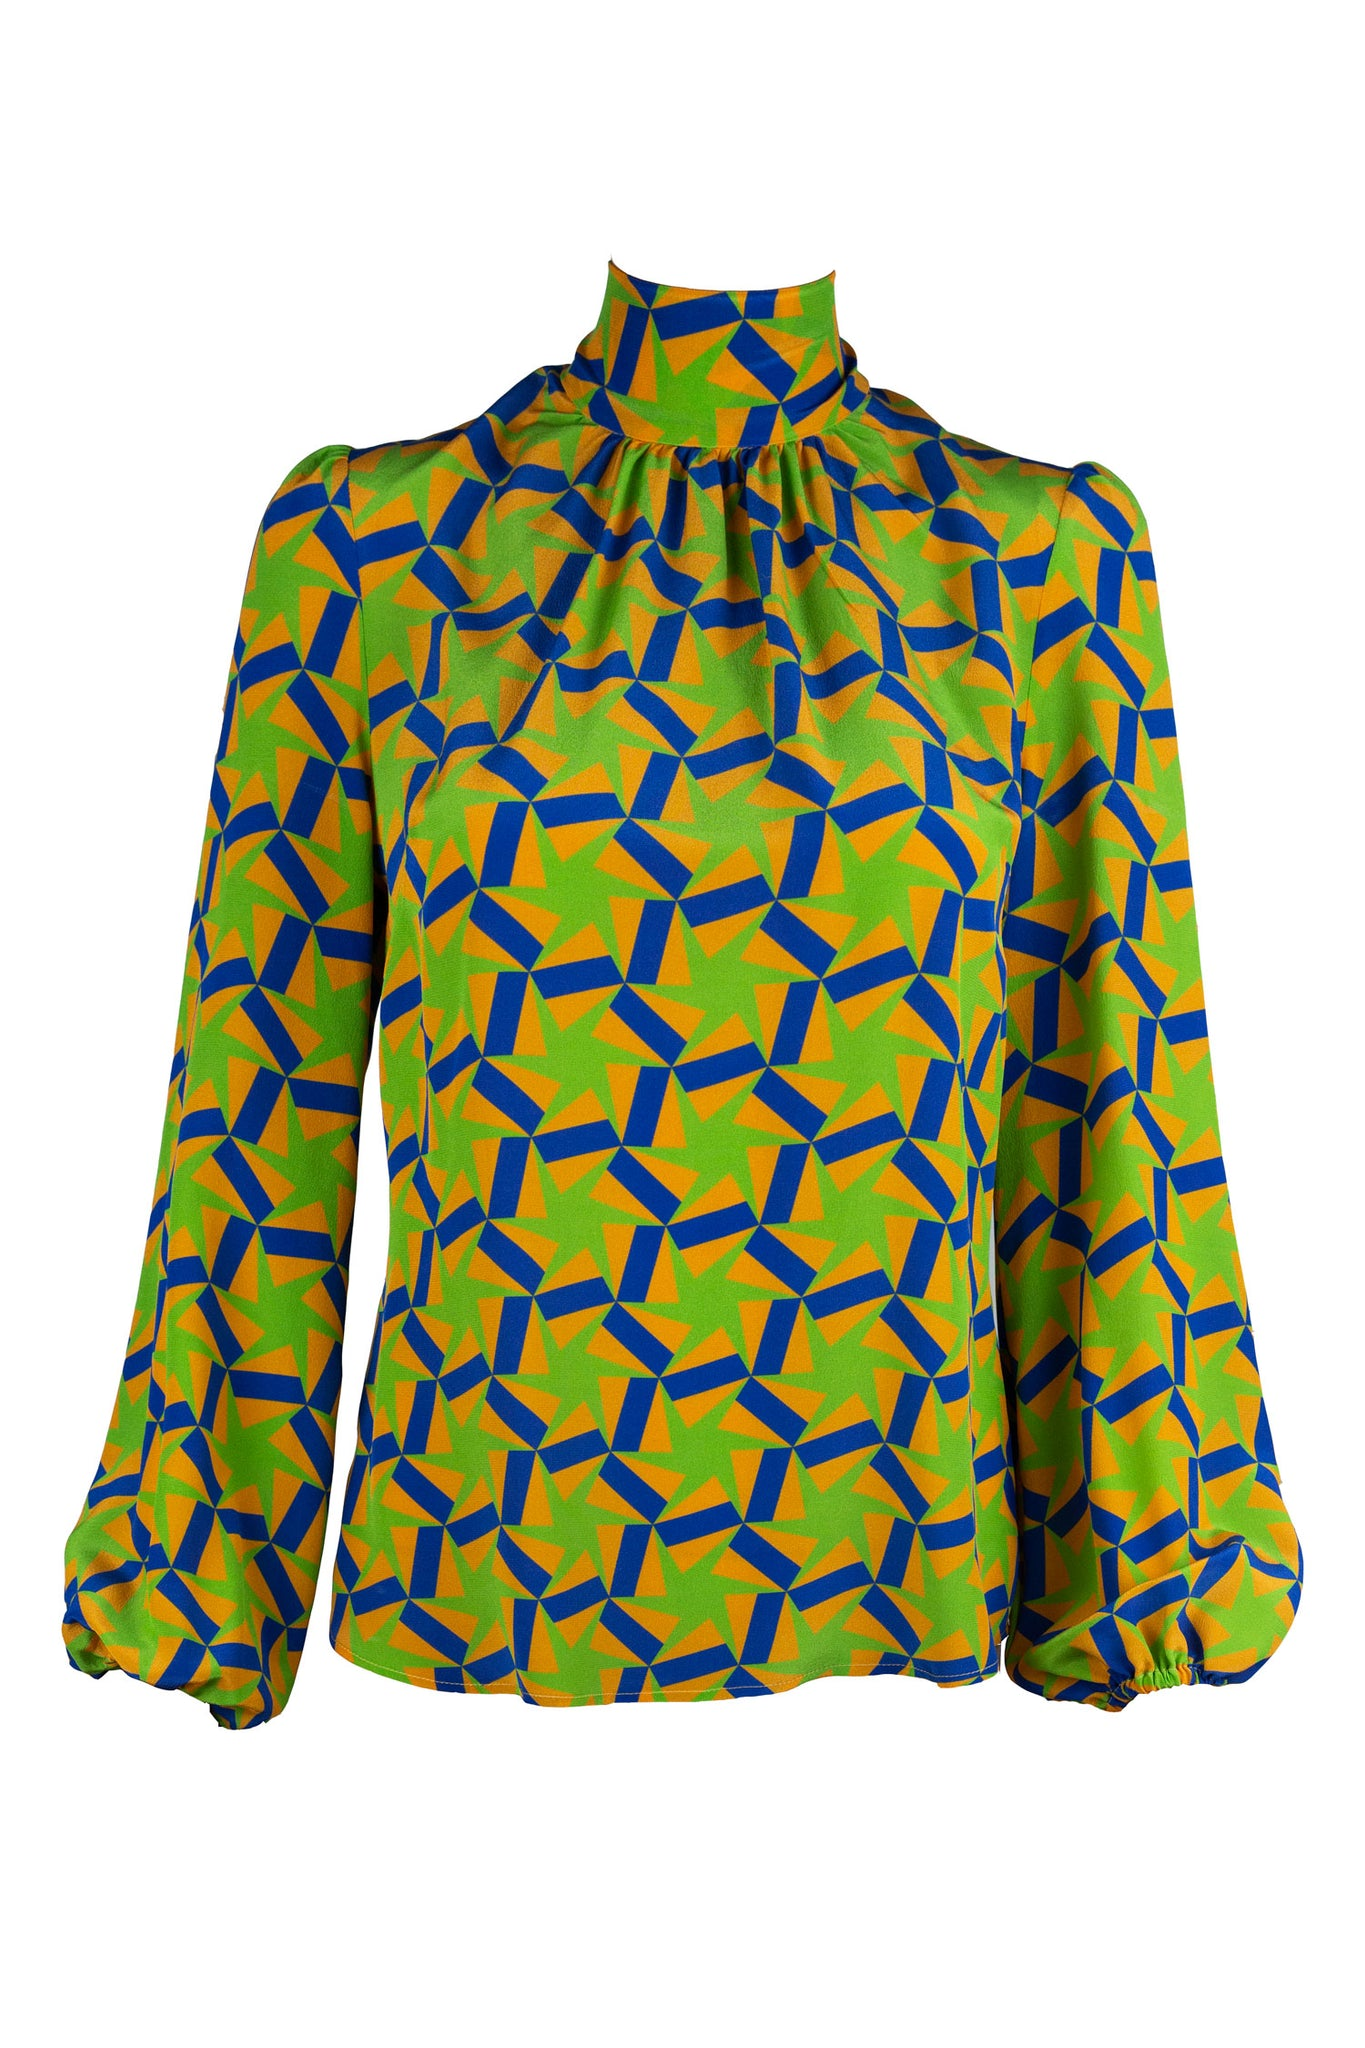 Stevie Blouse - Geometric Star Print